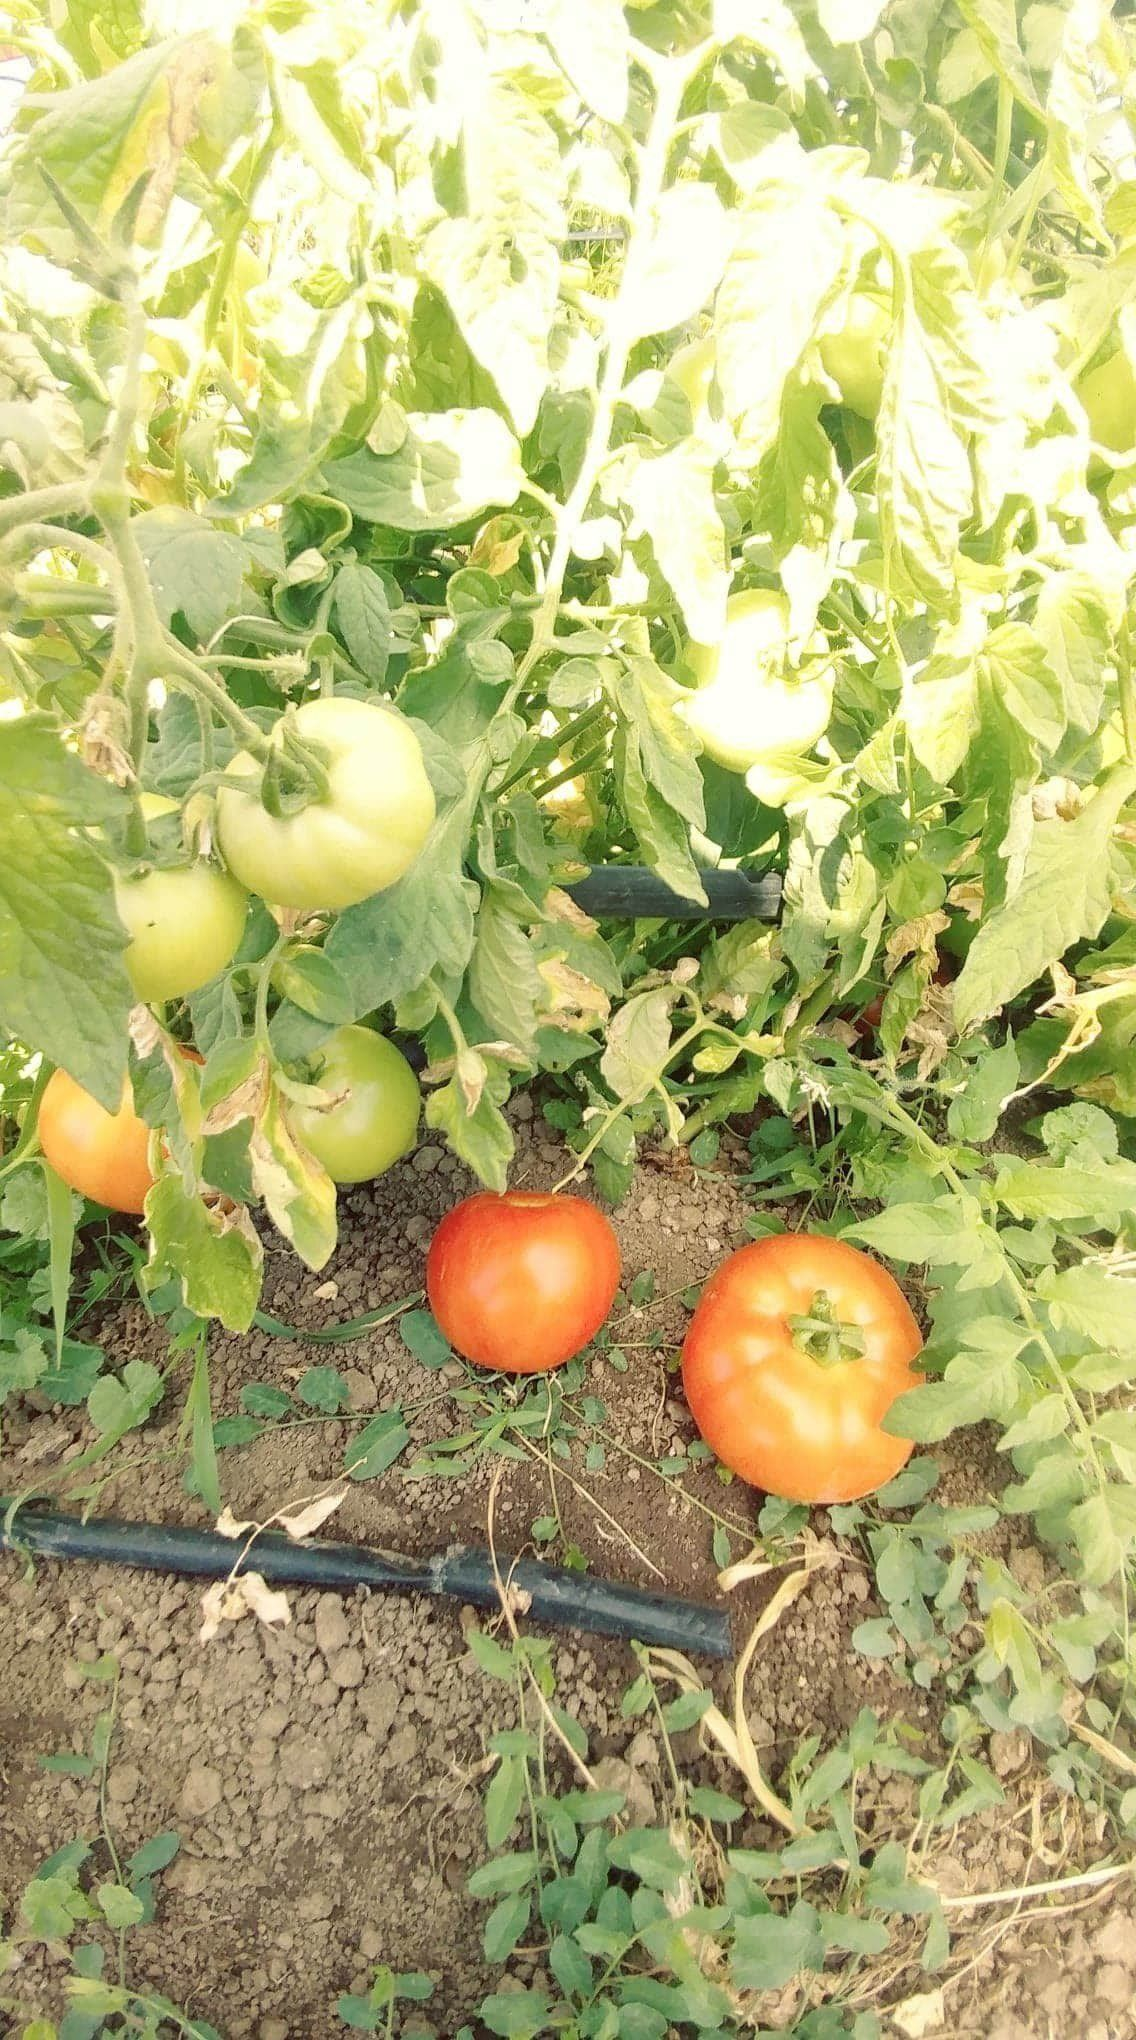 Previous Happening: Tomatoes!